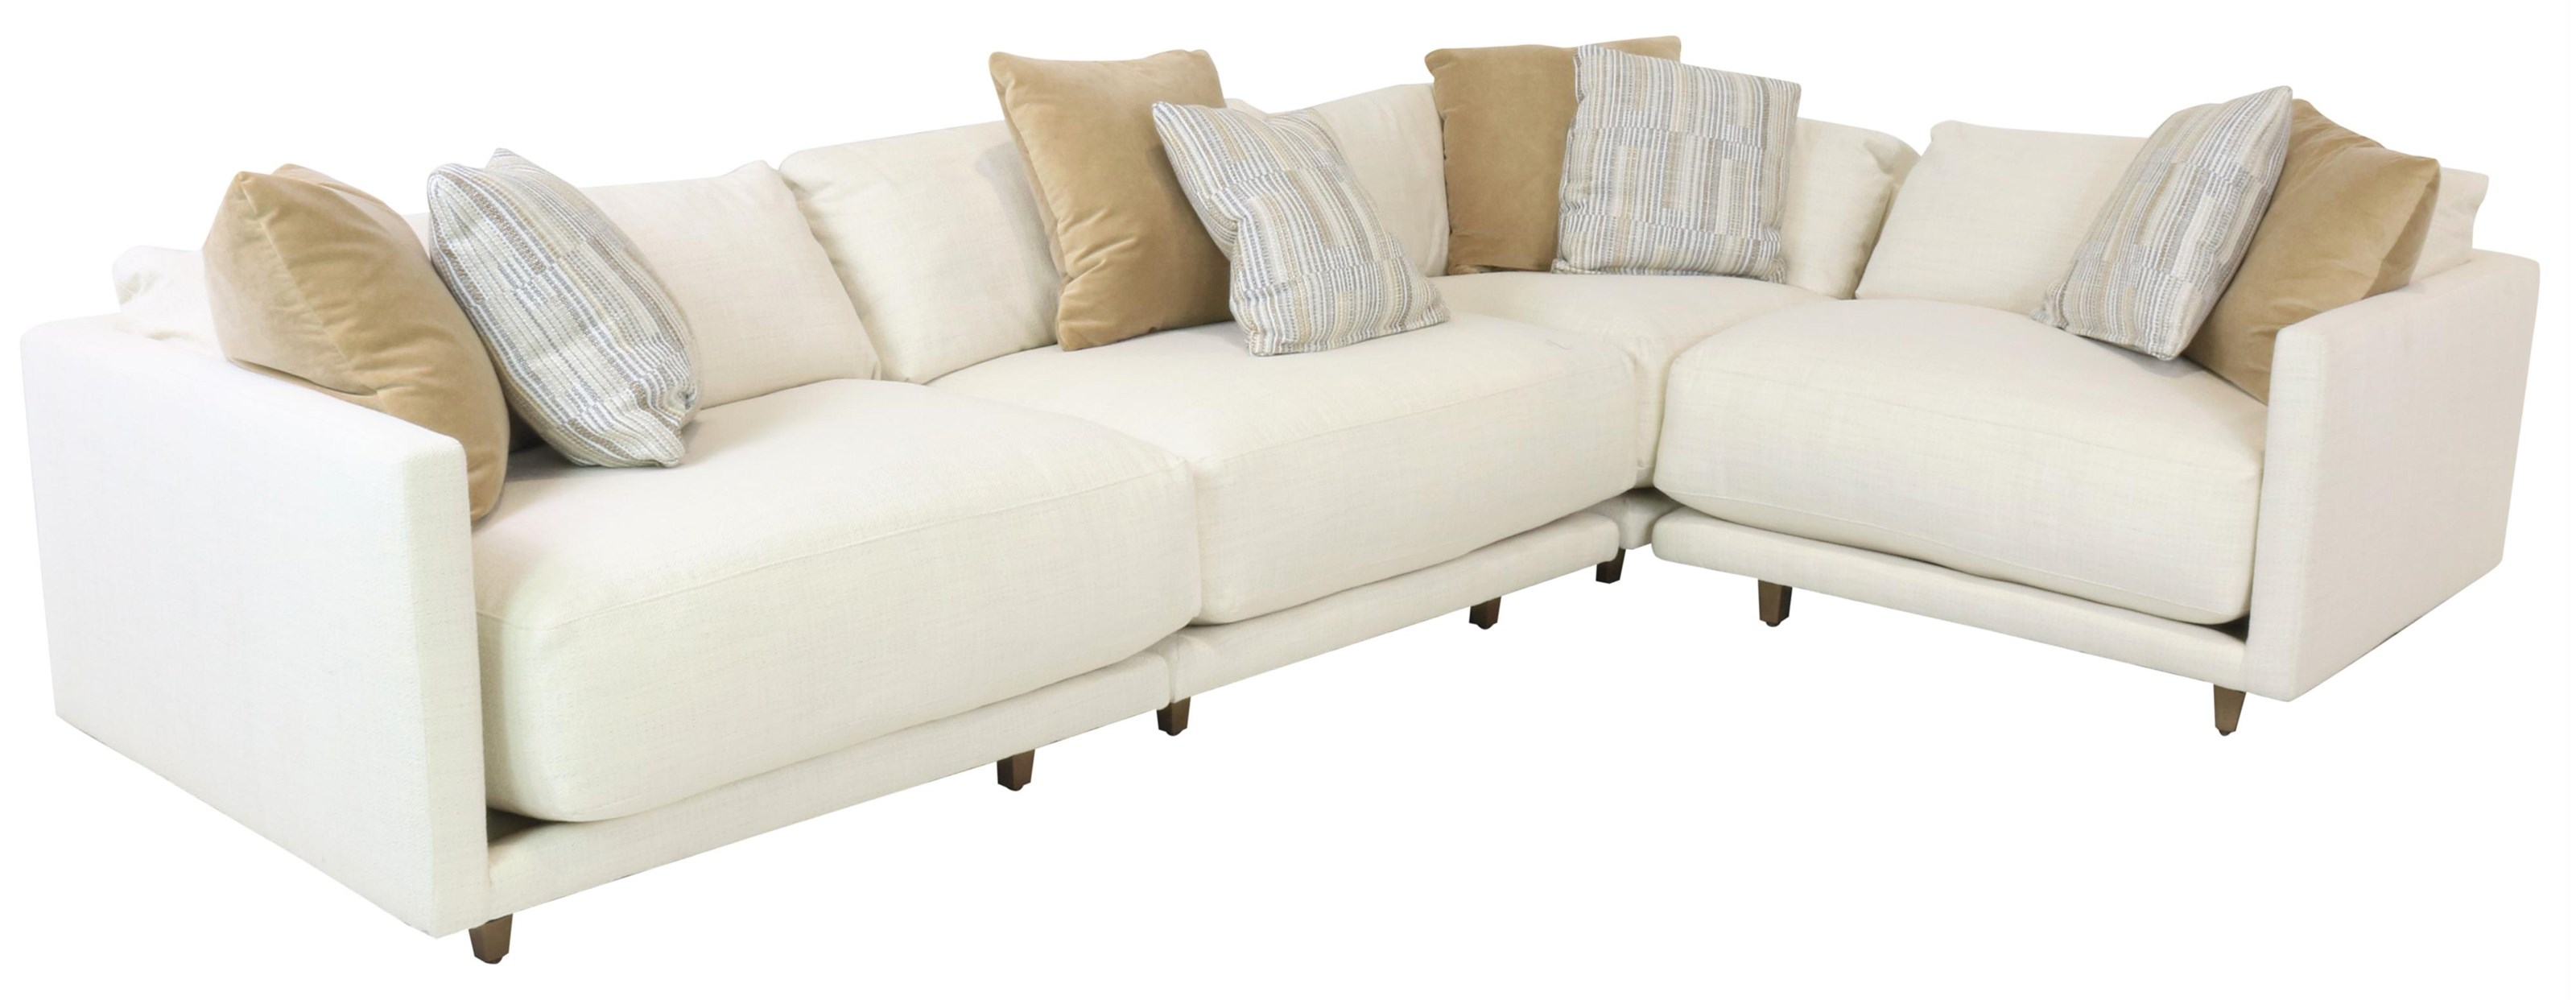 Neval Neval Four Piece Sectional by Robin Bruce at Sprintz Furniture